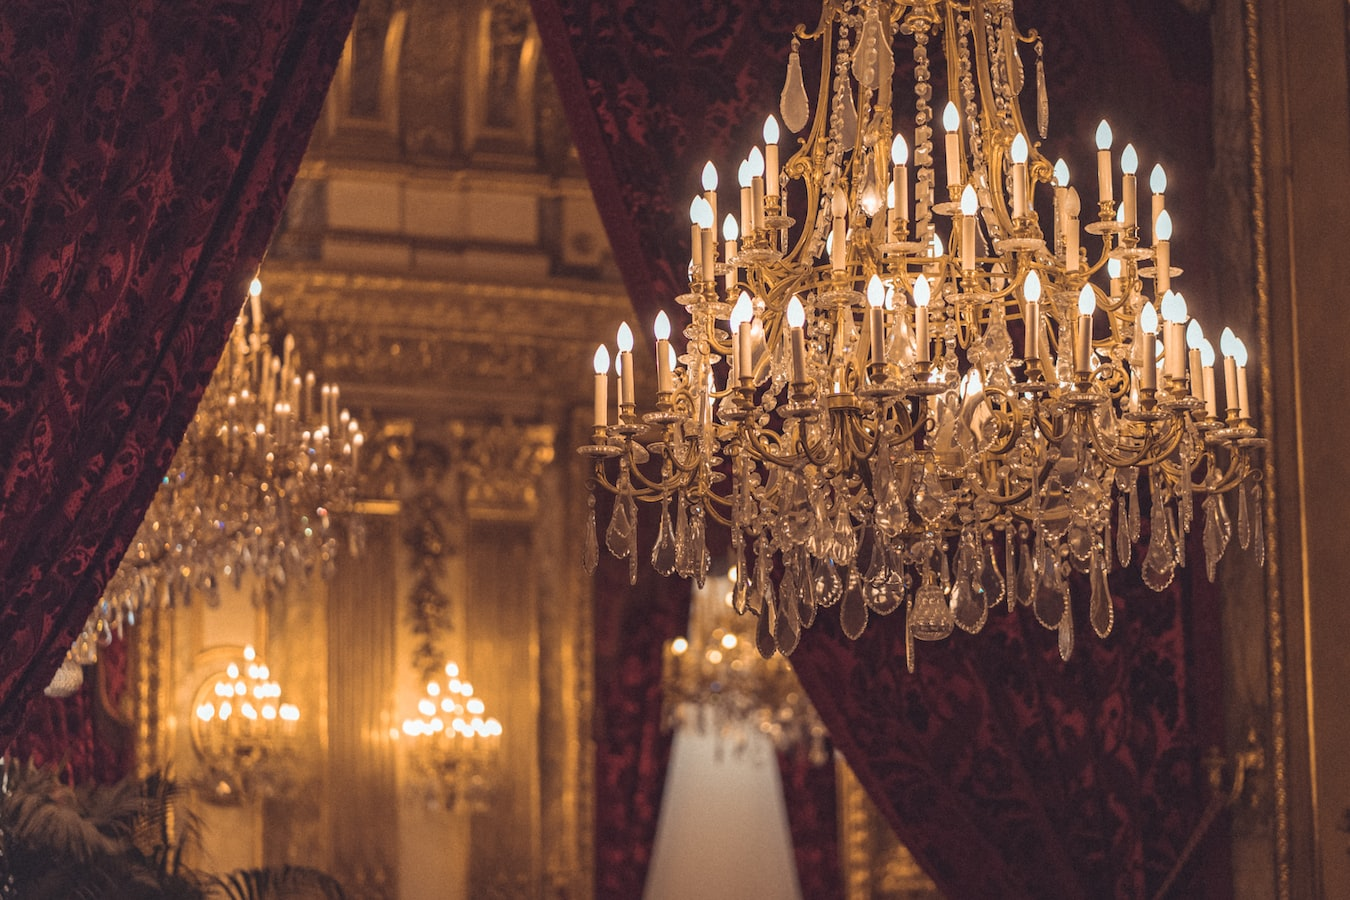 Gold and crystal chandelier in front of a mirror and some red velvet curtains.